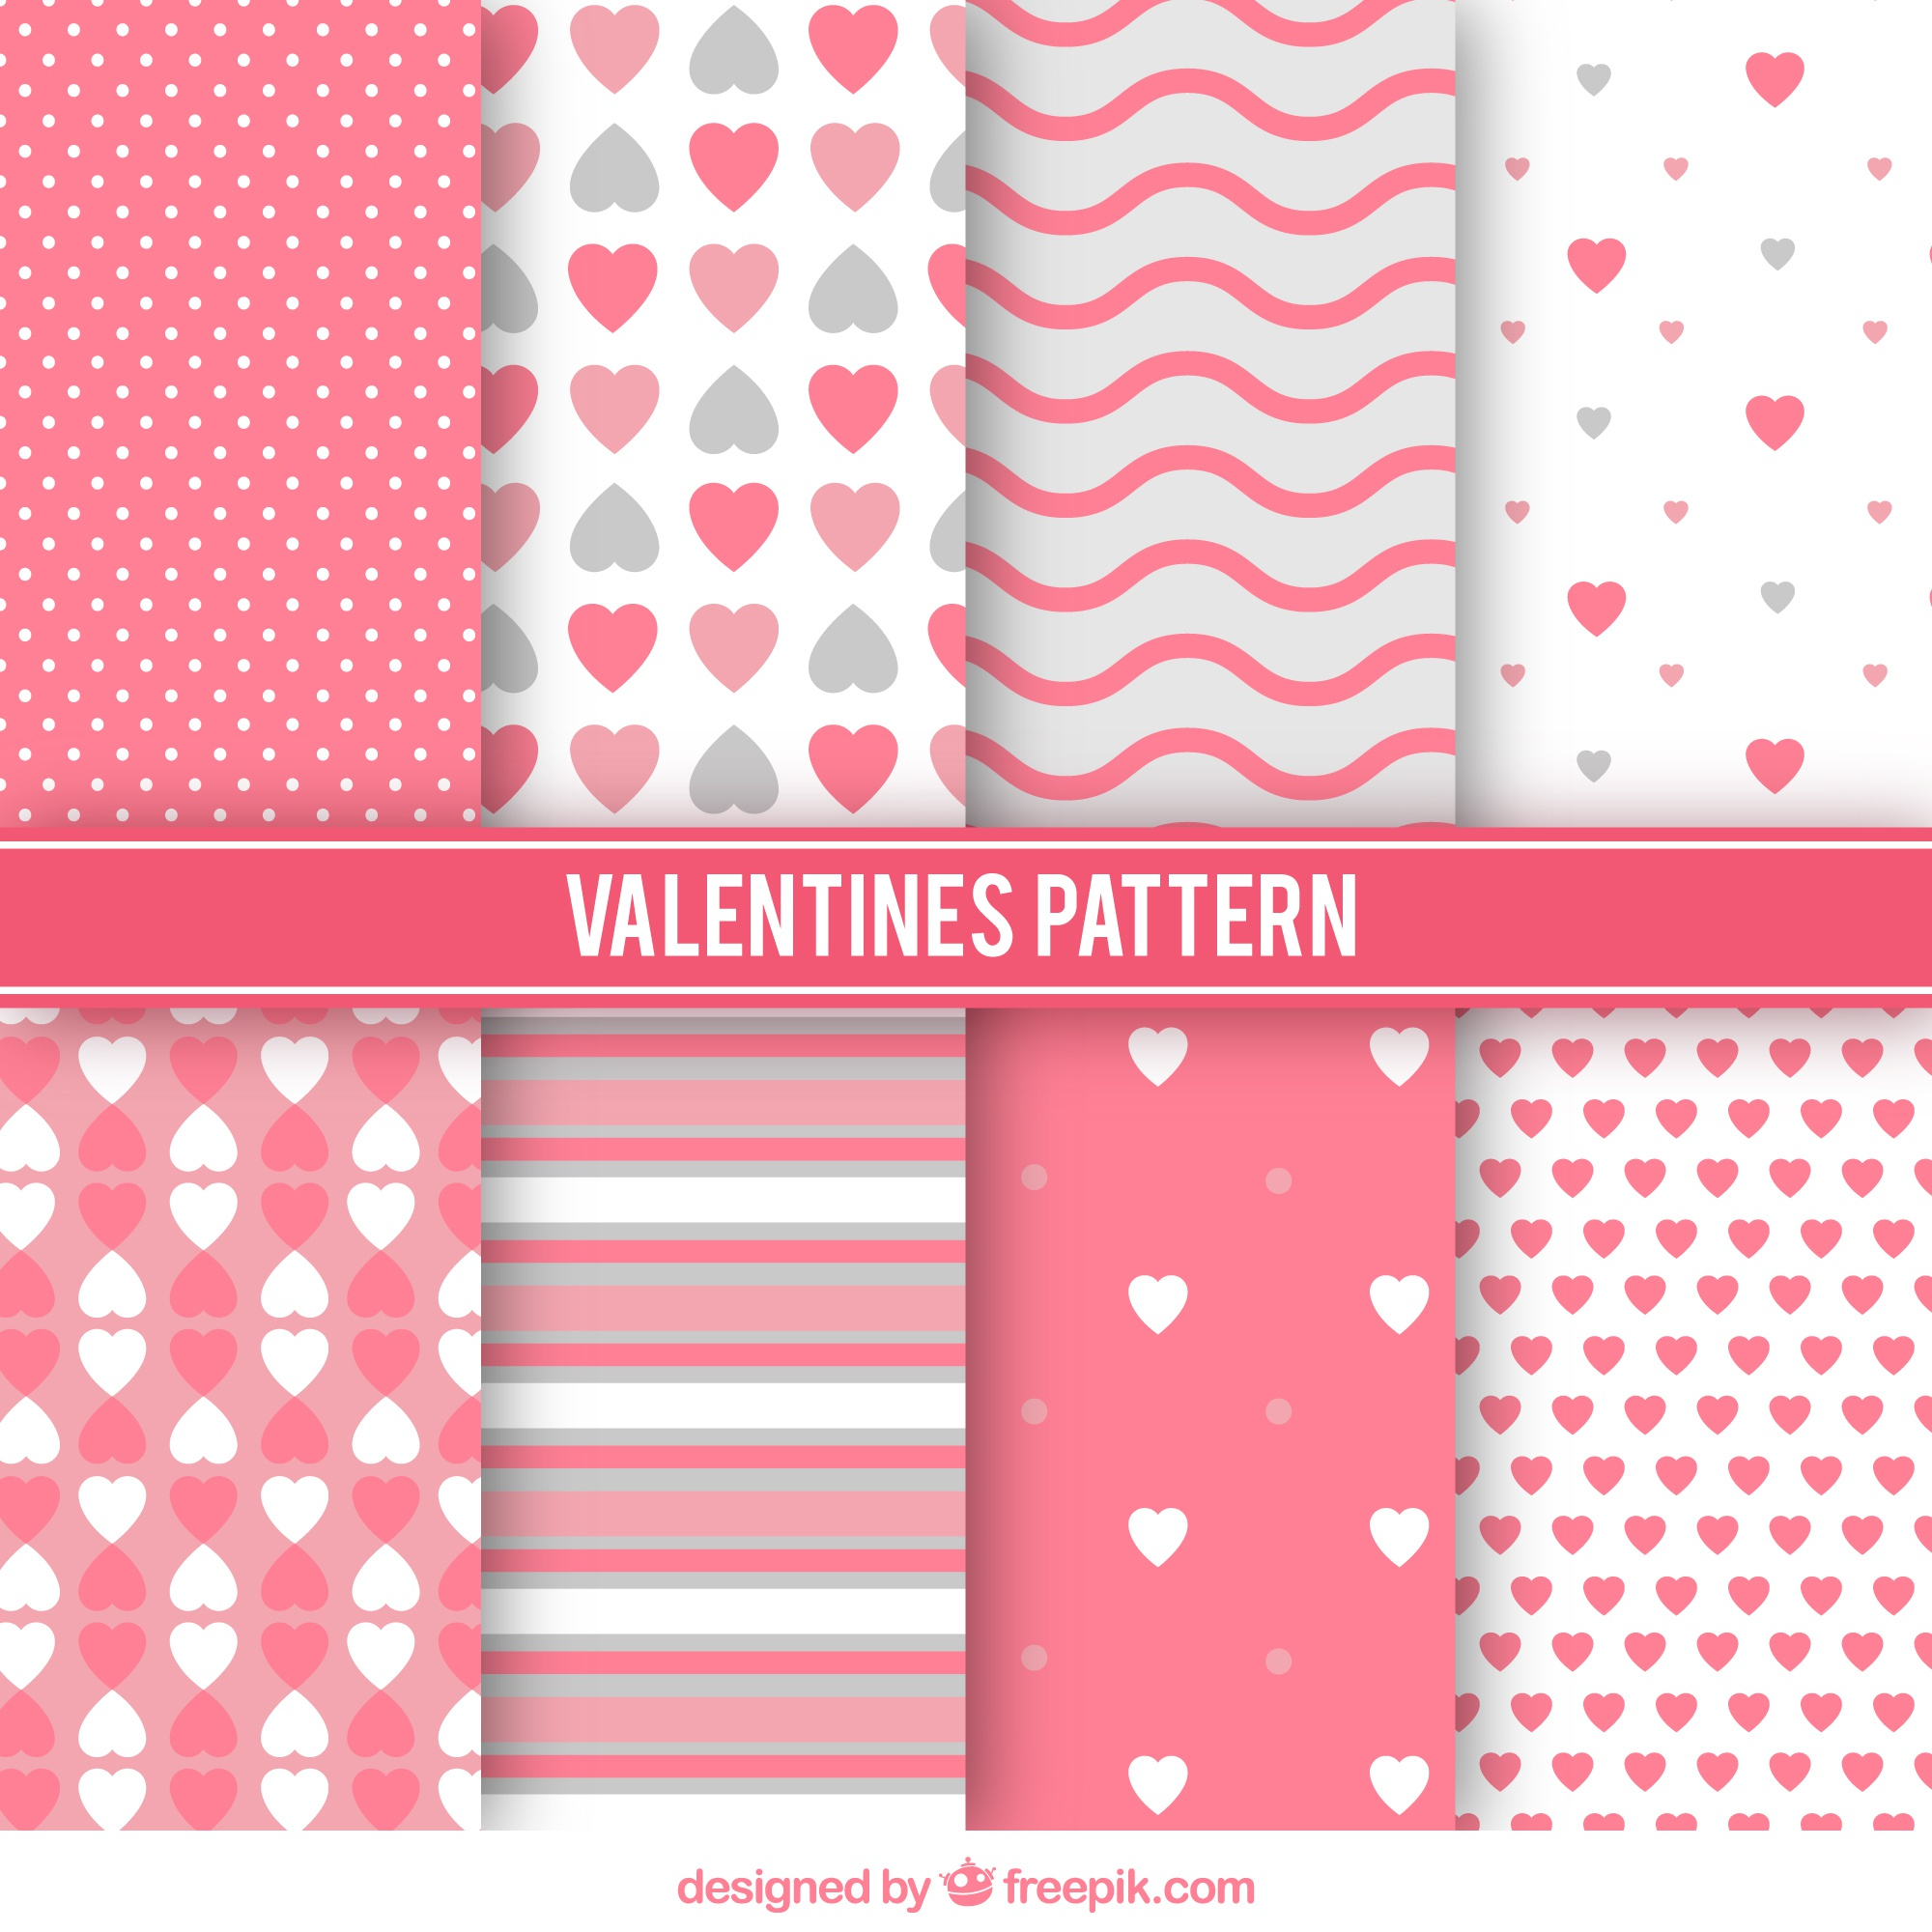 Variety of valentine patterns